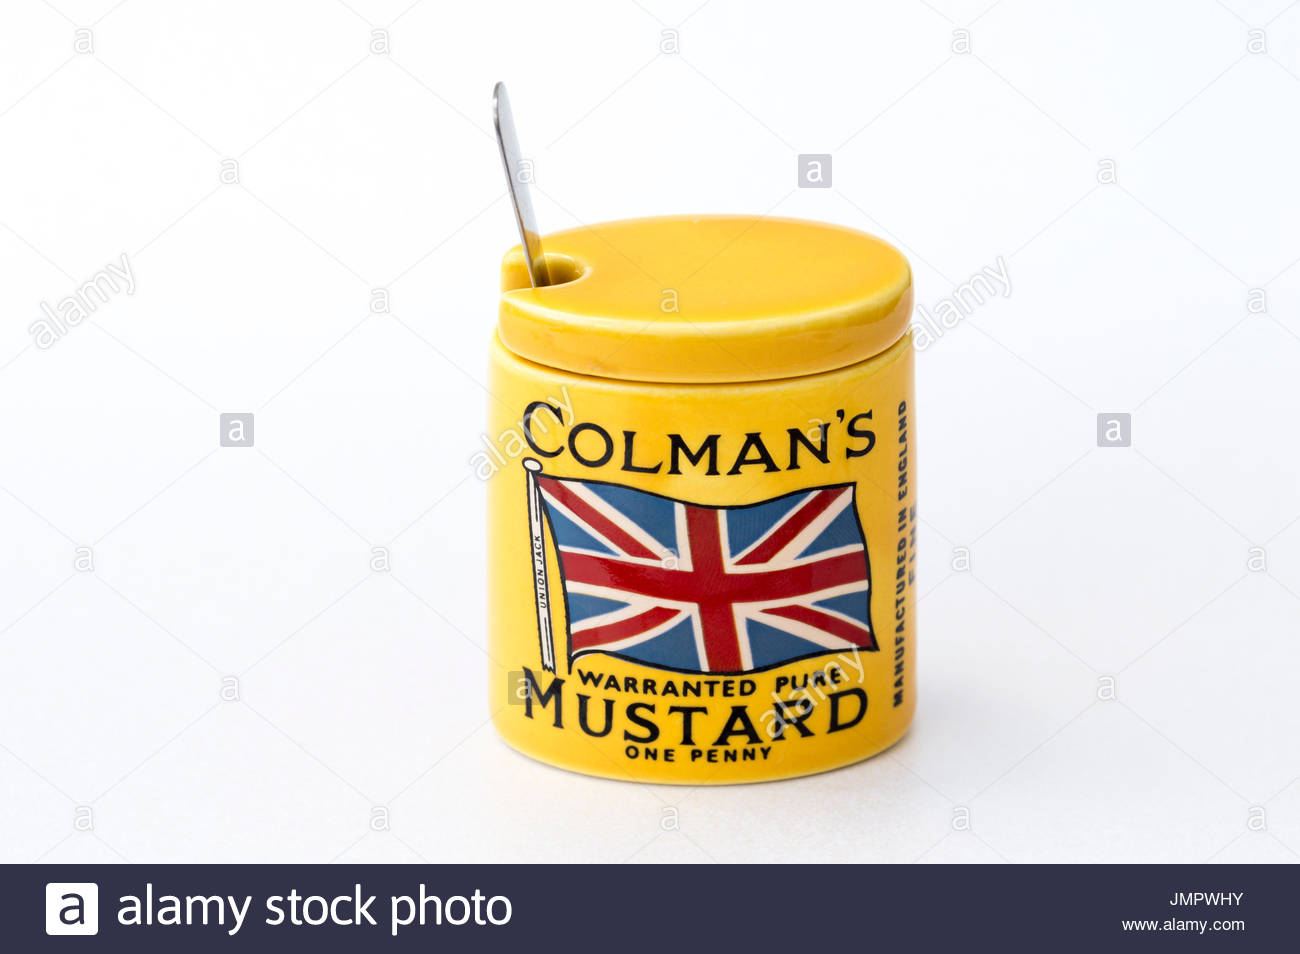 Coleman's Union Jack Mustard Pot and Spoon, Dorset, England, UK GB - Stock Image